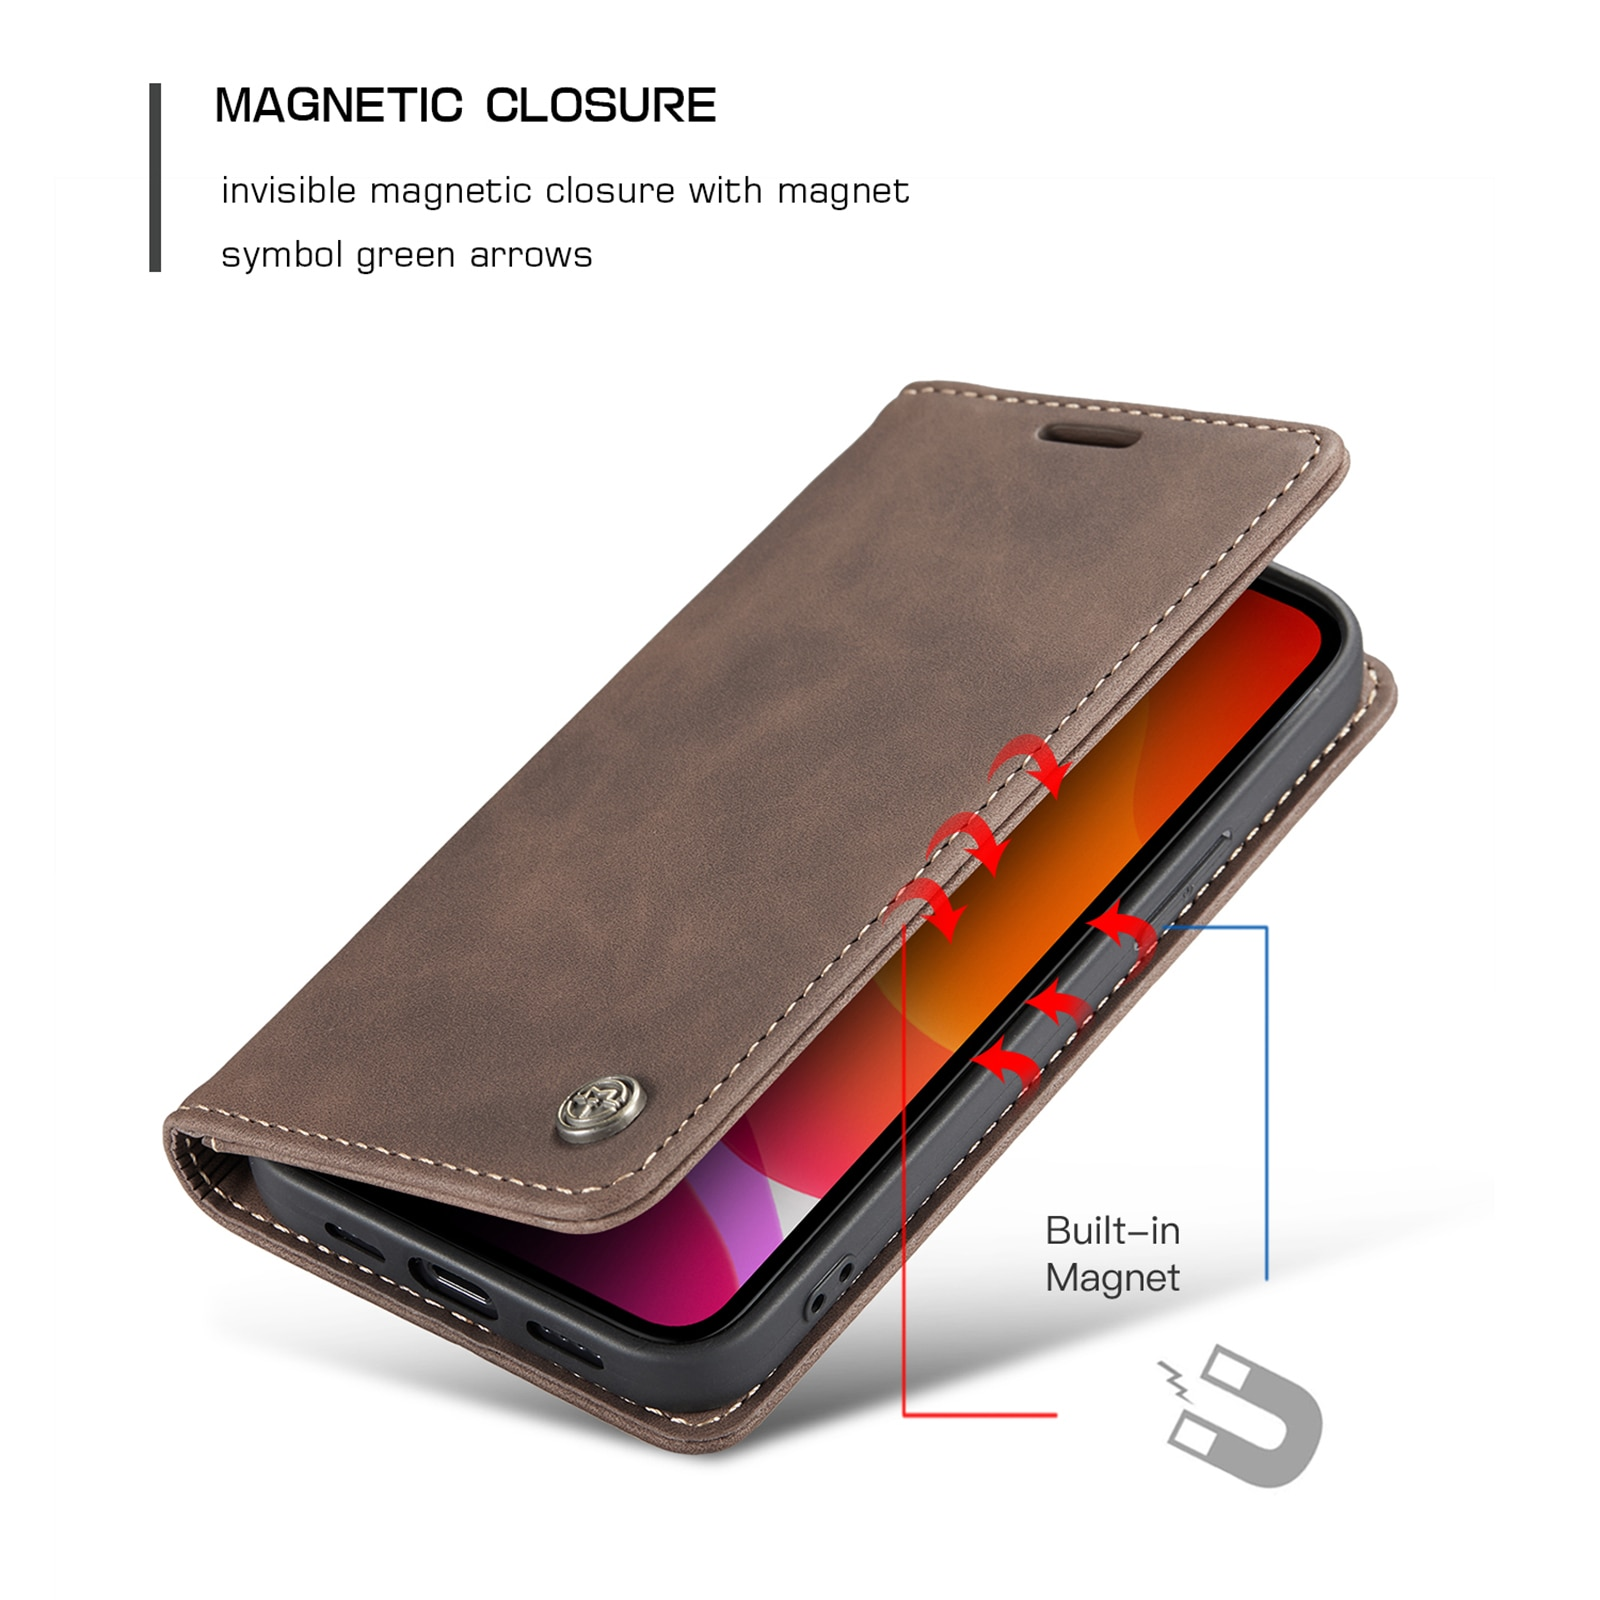 Hadd793325d6f4e628b36b9d83ed62180q - Magnetic Leather Flip Case For iPhone 12 / Pro / Pro Max PU Leather Fitted Bumper Soft Retro Flip Case Book Wallet Cover